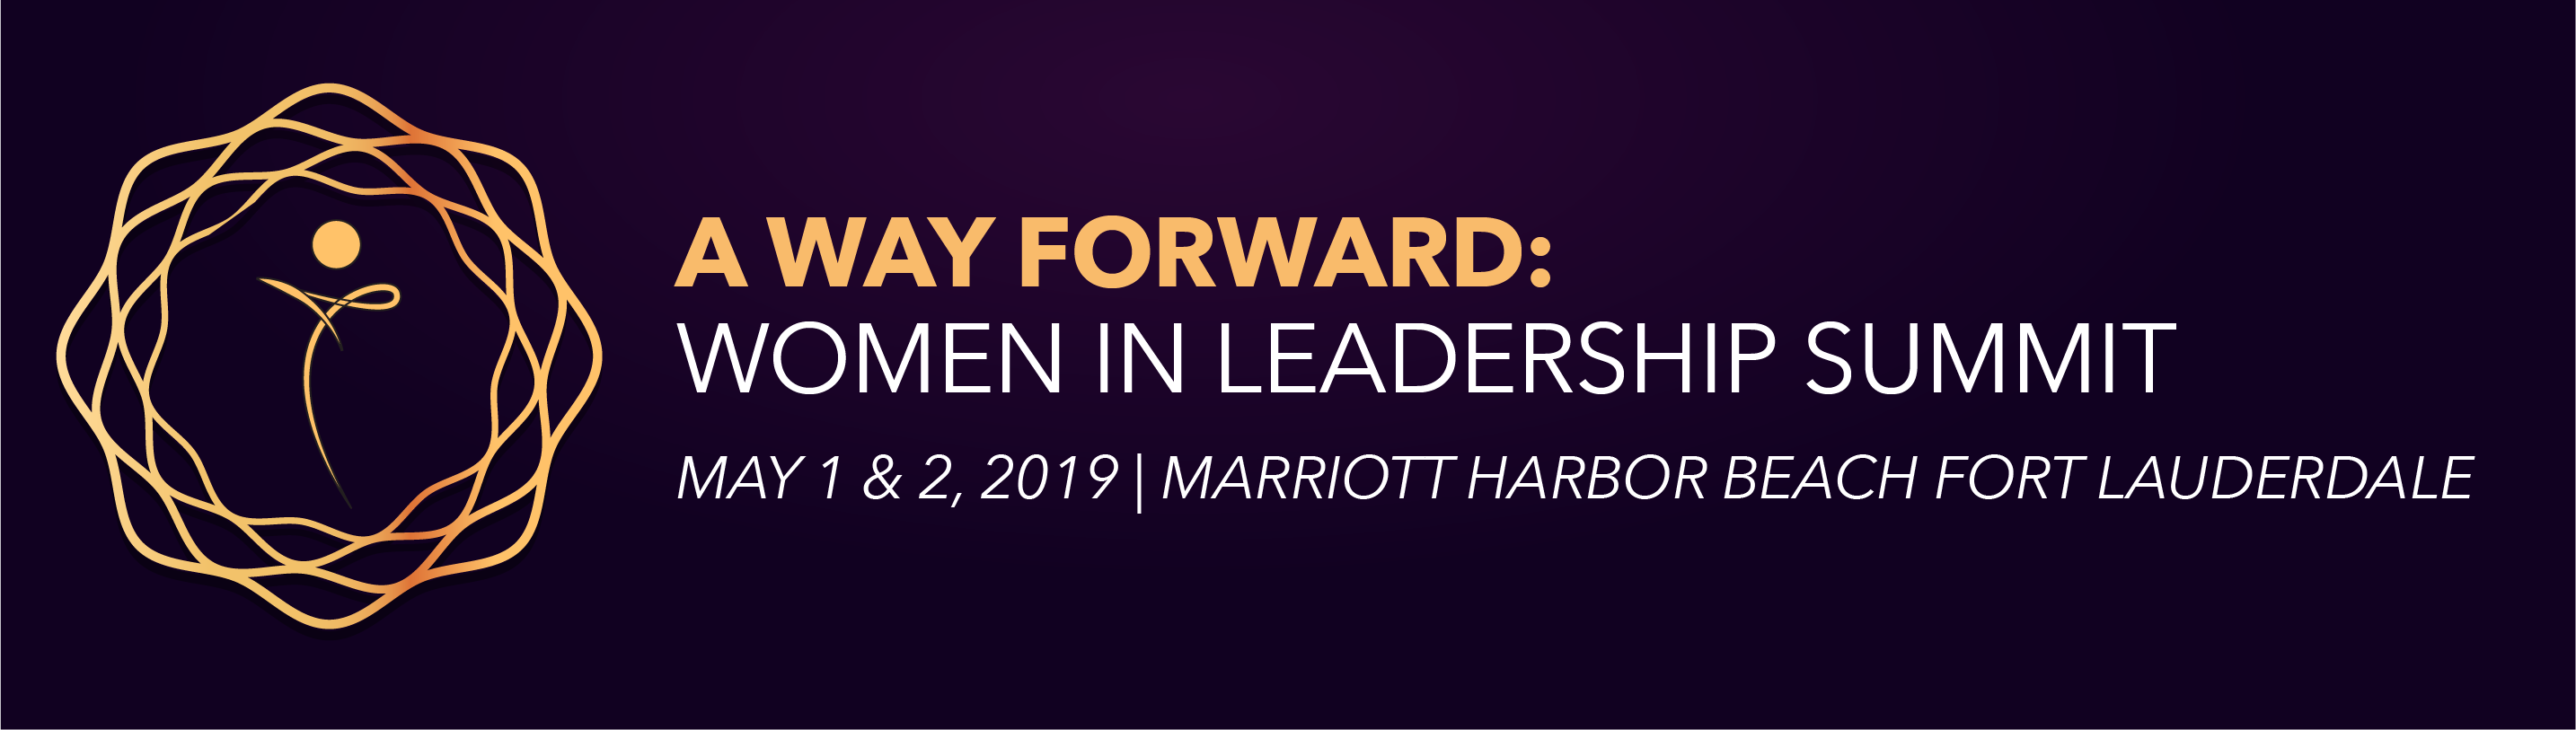 A Way Forward: Women In Leadership Summit 2019